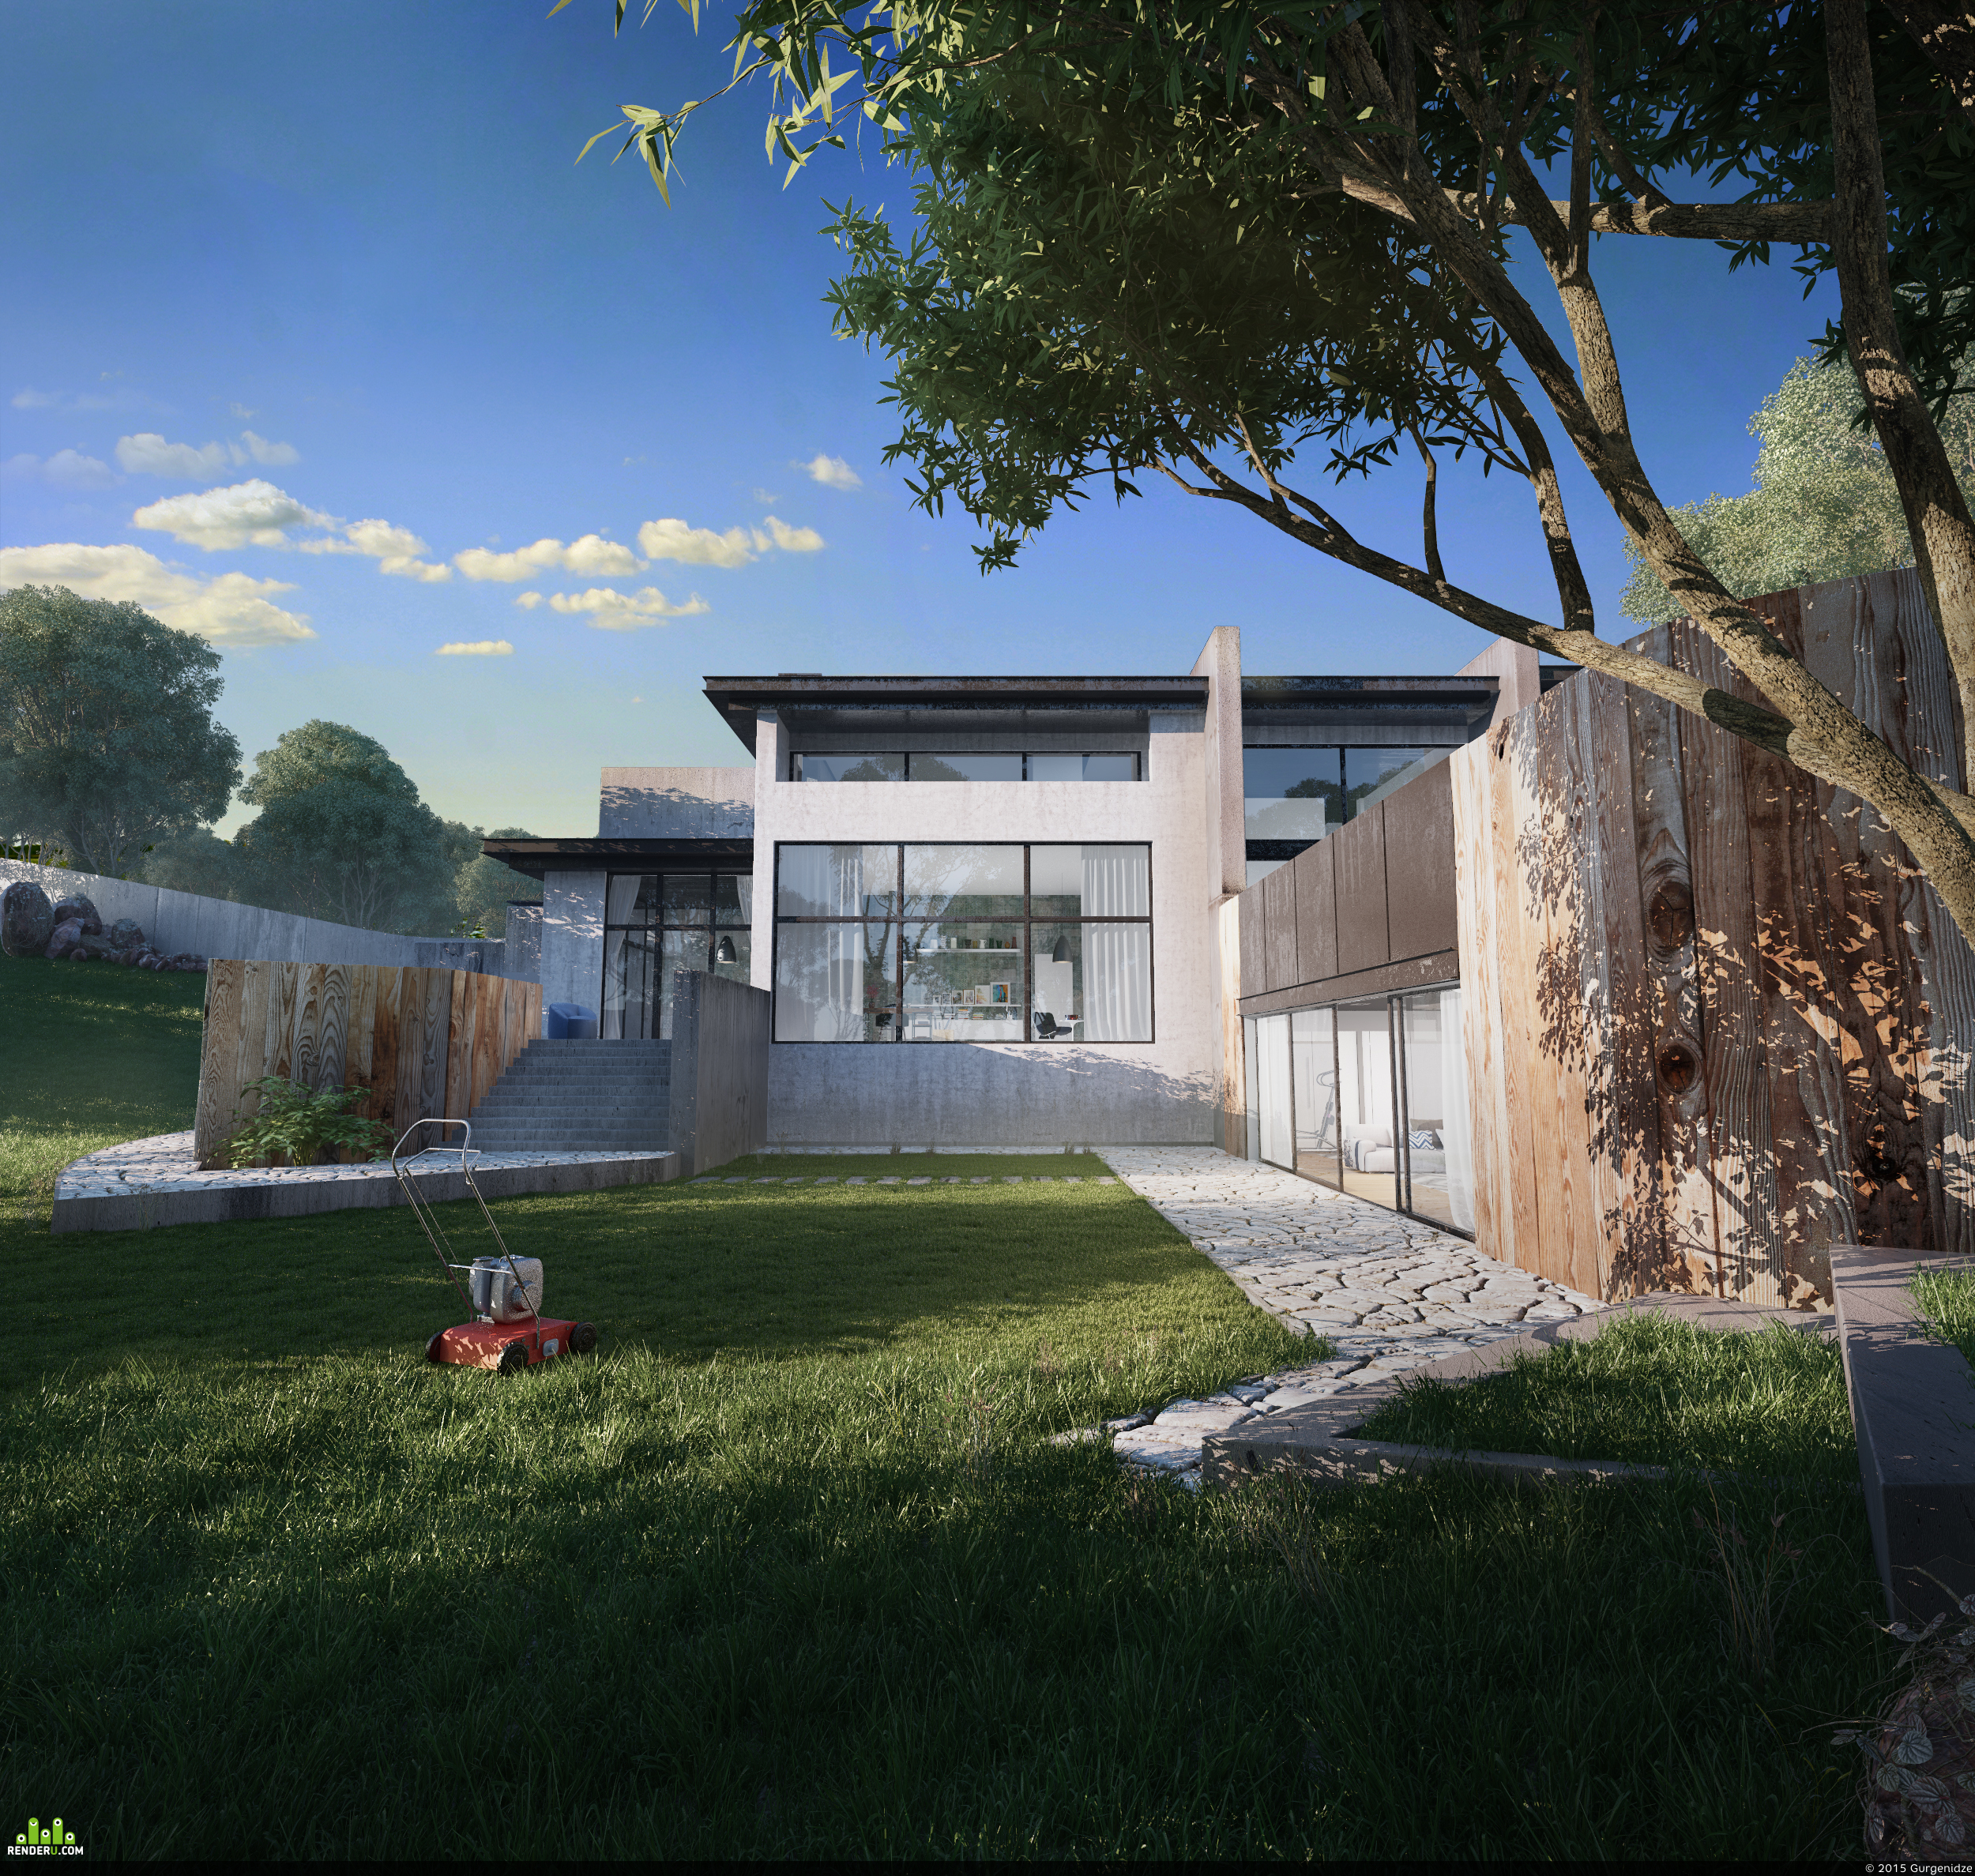 preview ICG Architectural Rendering Challenge